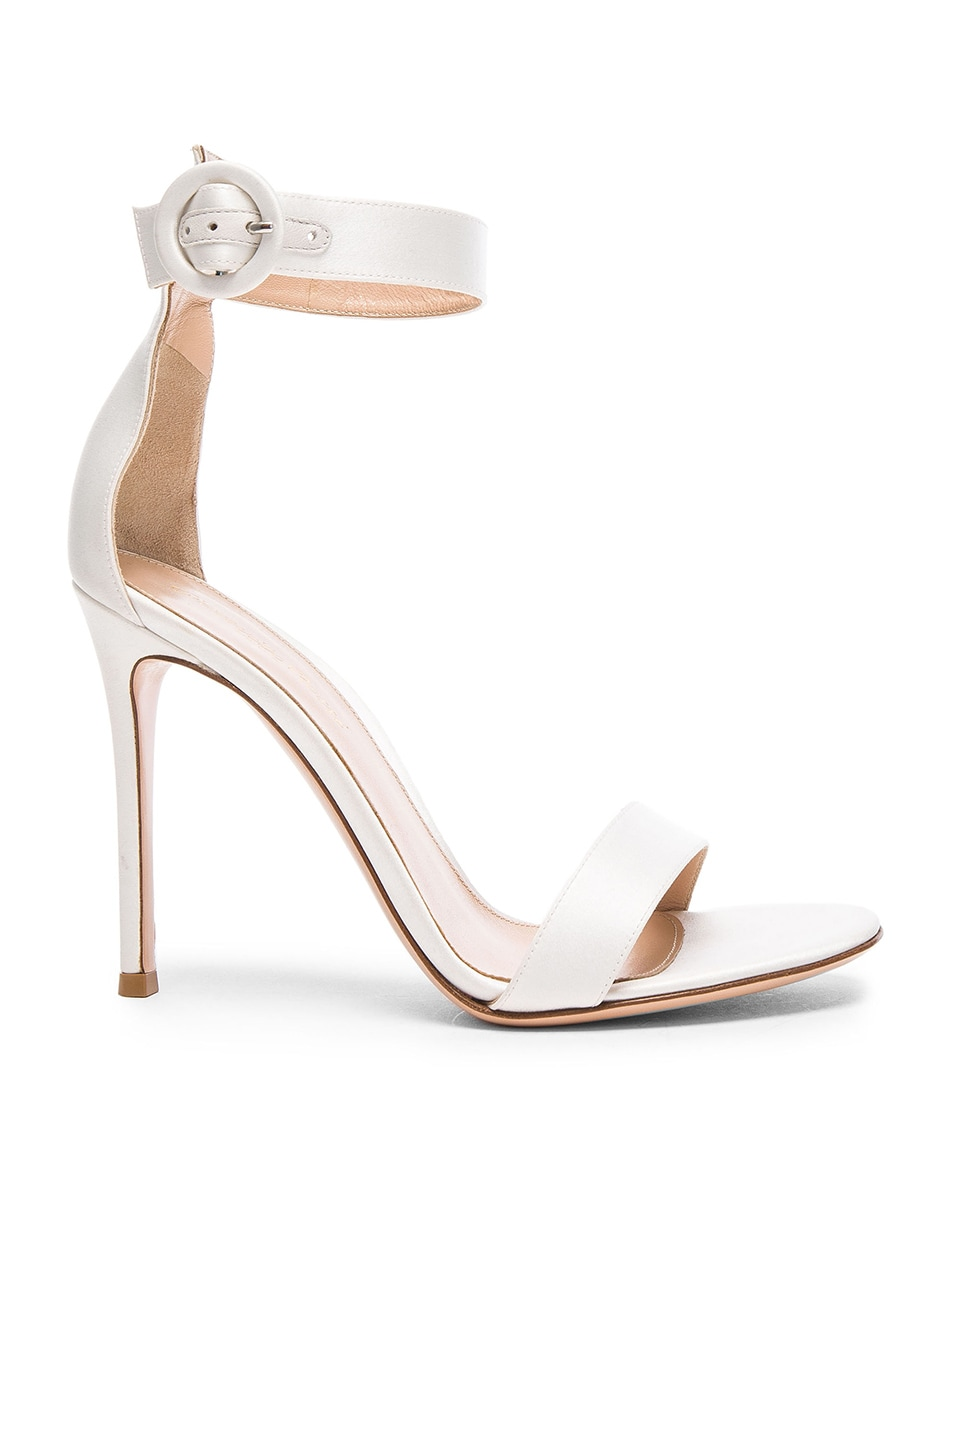 Image 1 of Gianvito Rossi Satin Portofino Heels in Off White